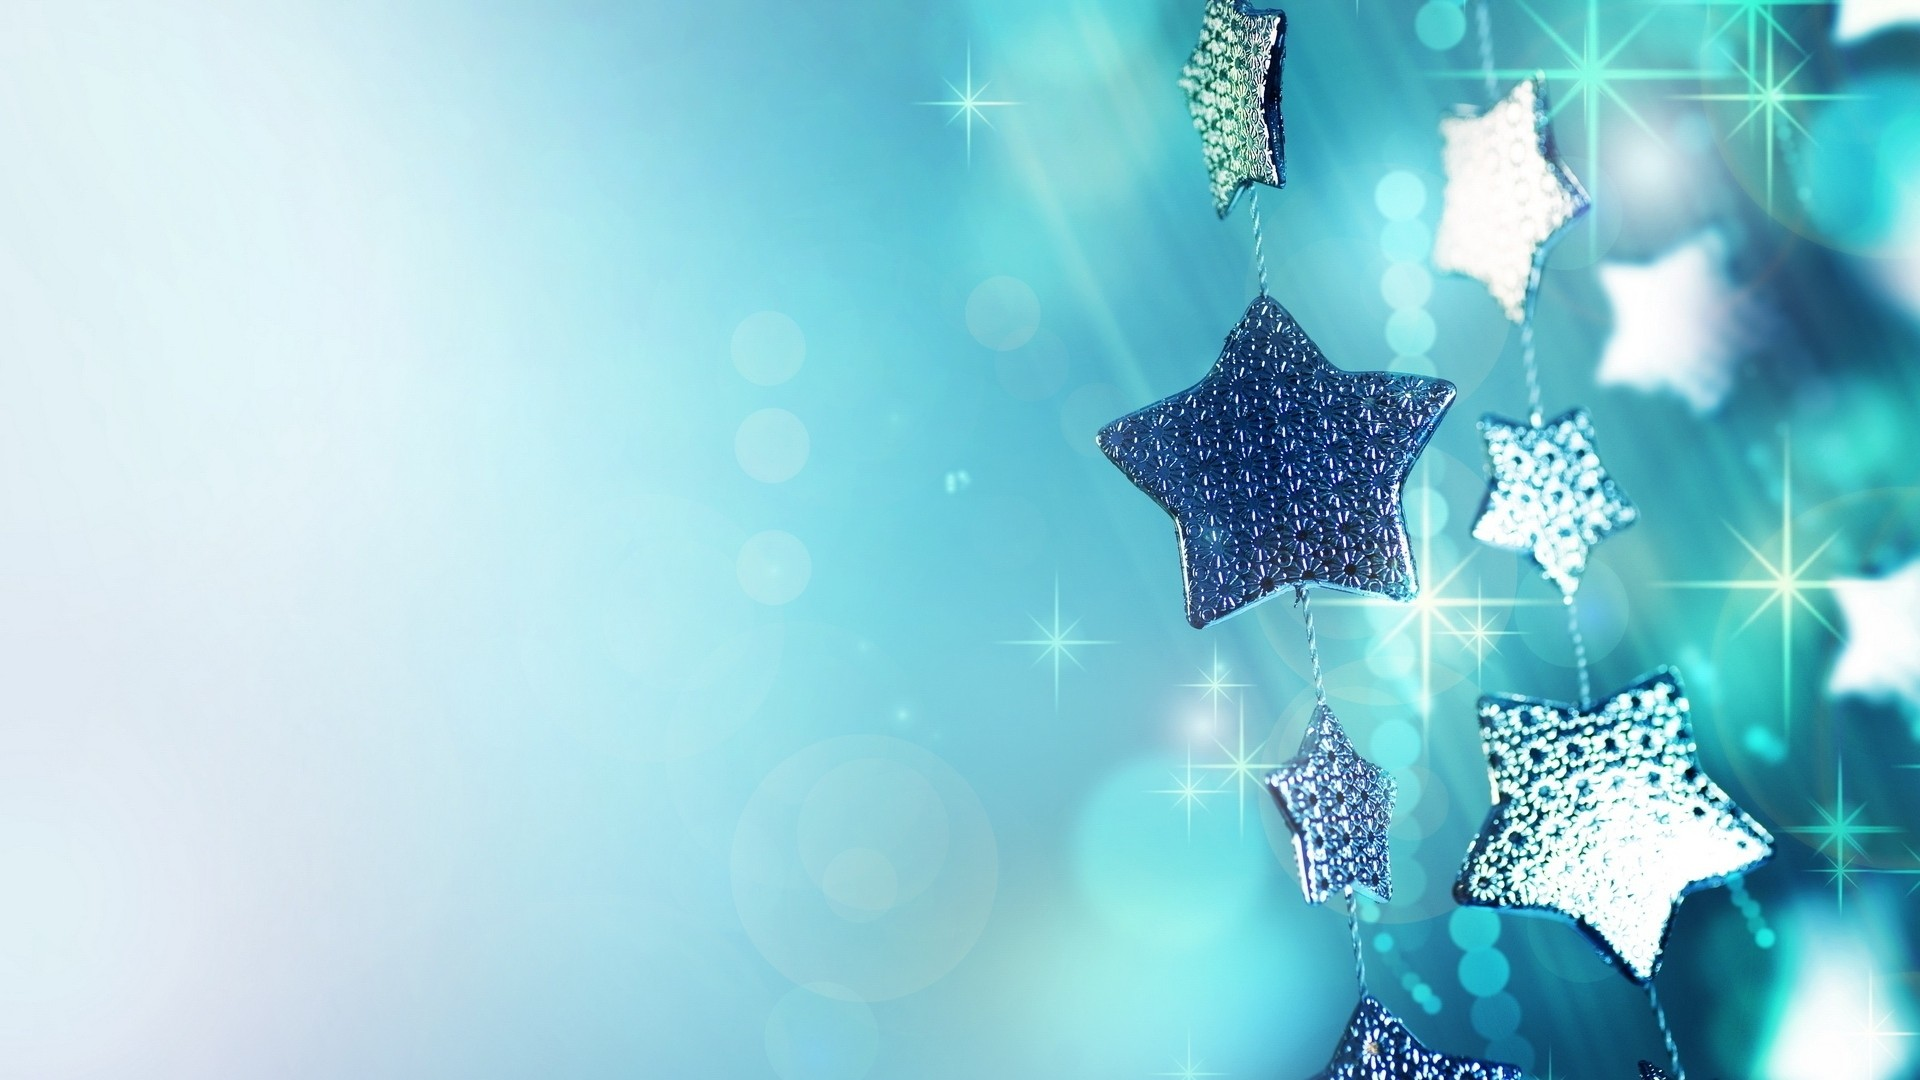 1920x1080 Preview wallpaper glitter, garland, blue, christmas ornaments, stars,  sparks, macro